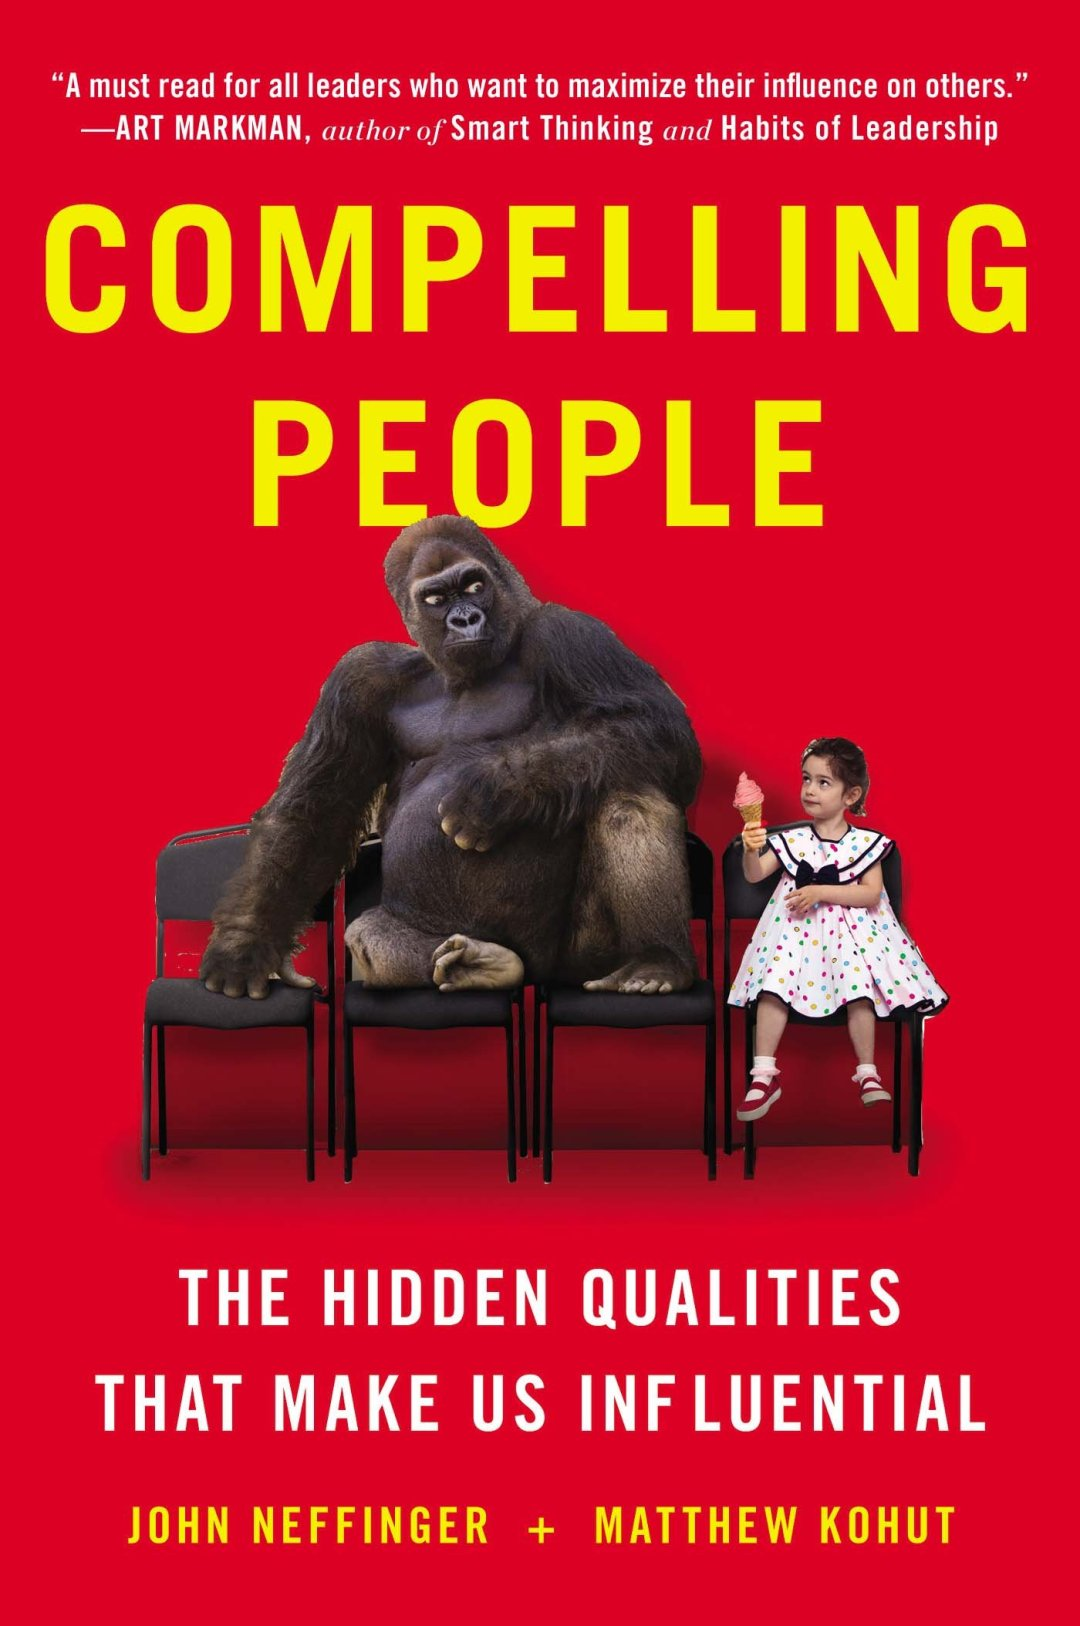 Compelling People: The Hidden Qualities That Make Us Influential by John Neffinger & Matthew Kohut